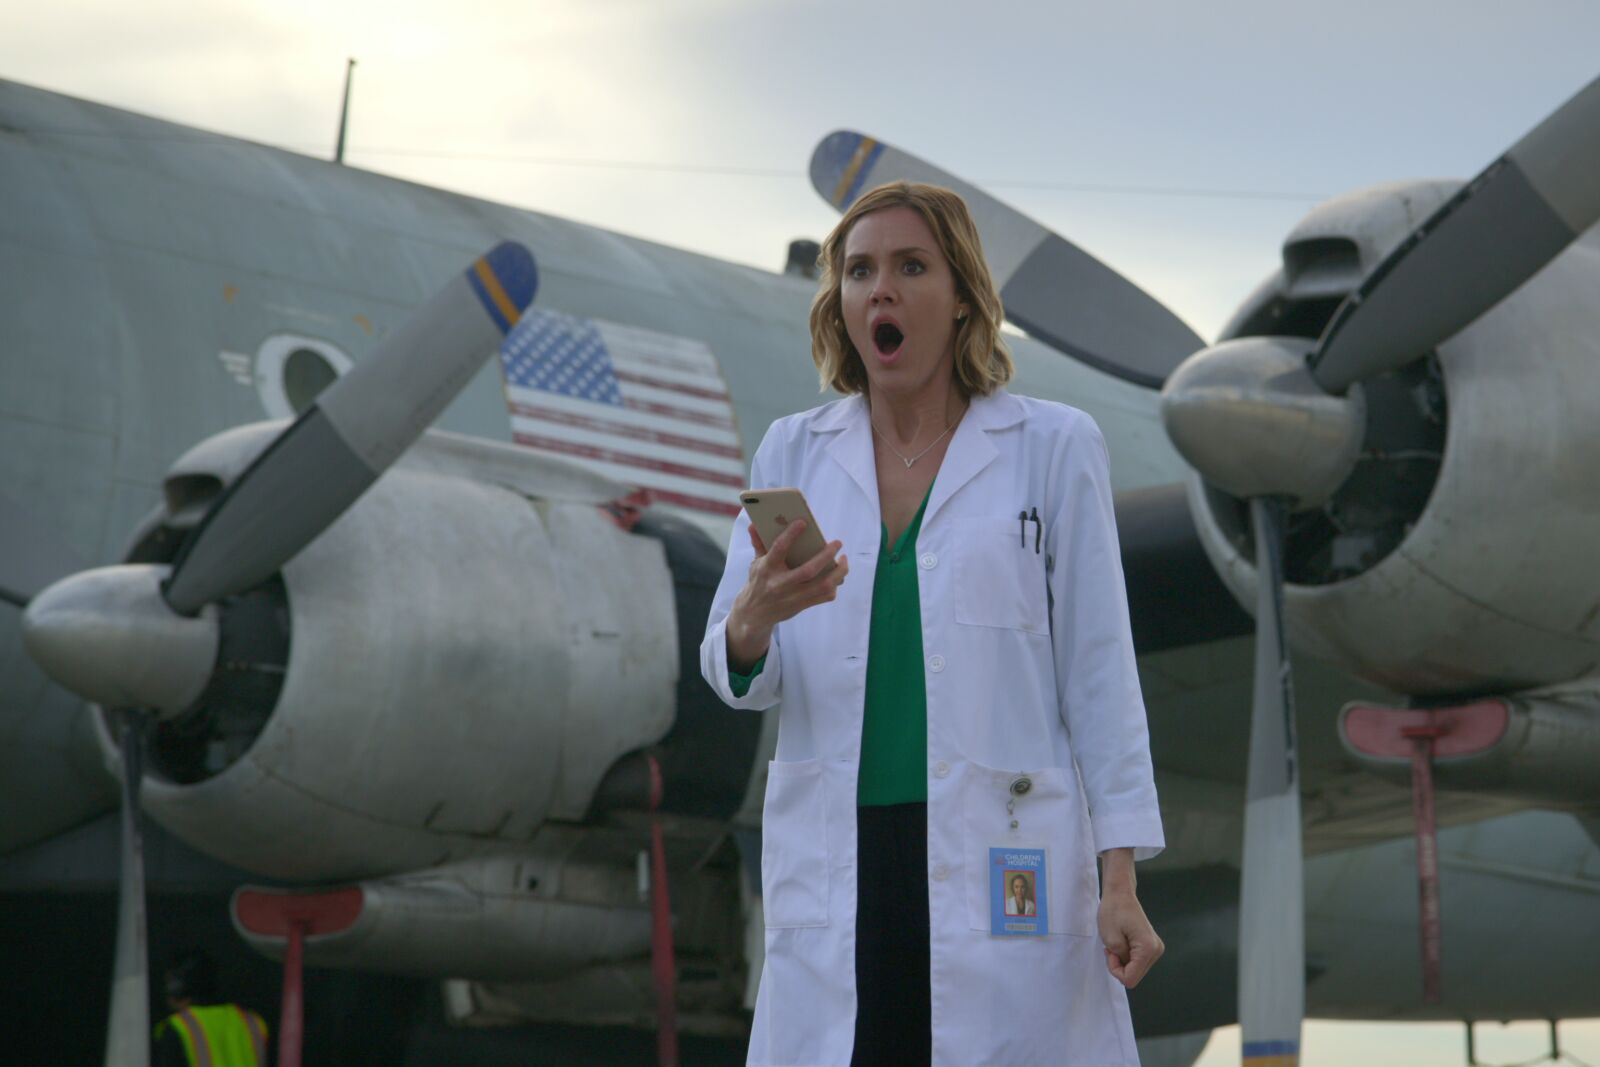 Medical Police season 1 finale recap: Everything Goes Back to Normal…Or Do They?